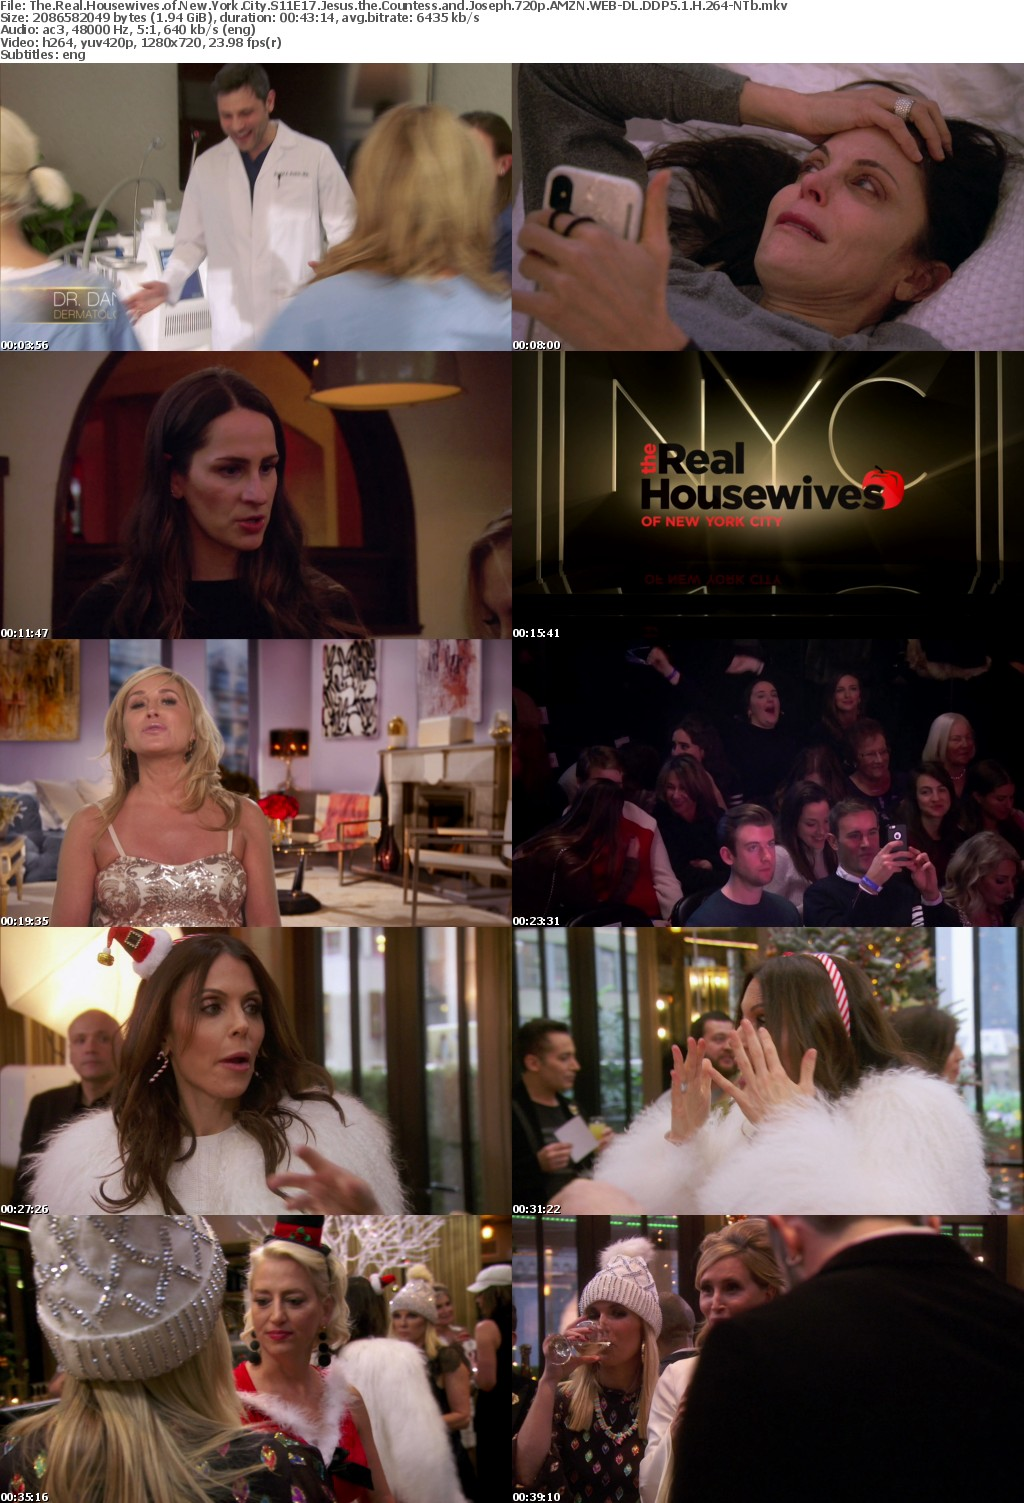 The Real Housewives of New York City S11 720p AMZN WEB-DL DDP5 1 H 264-NTb